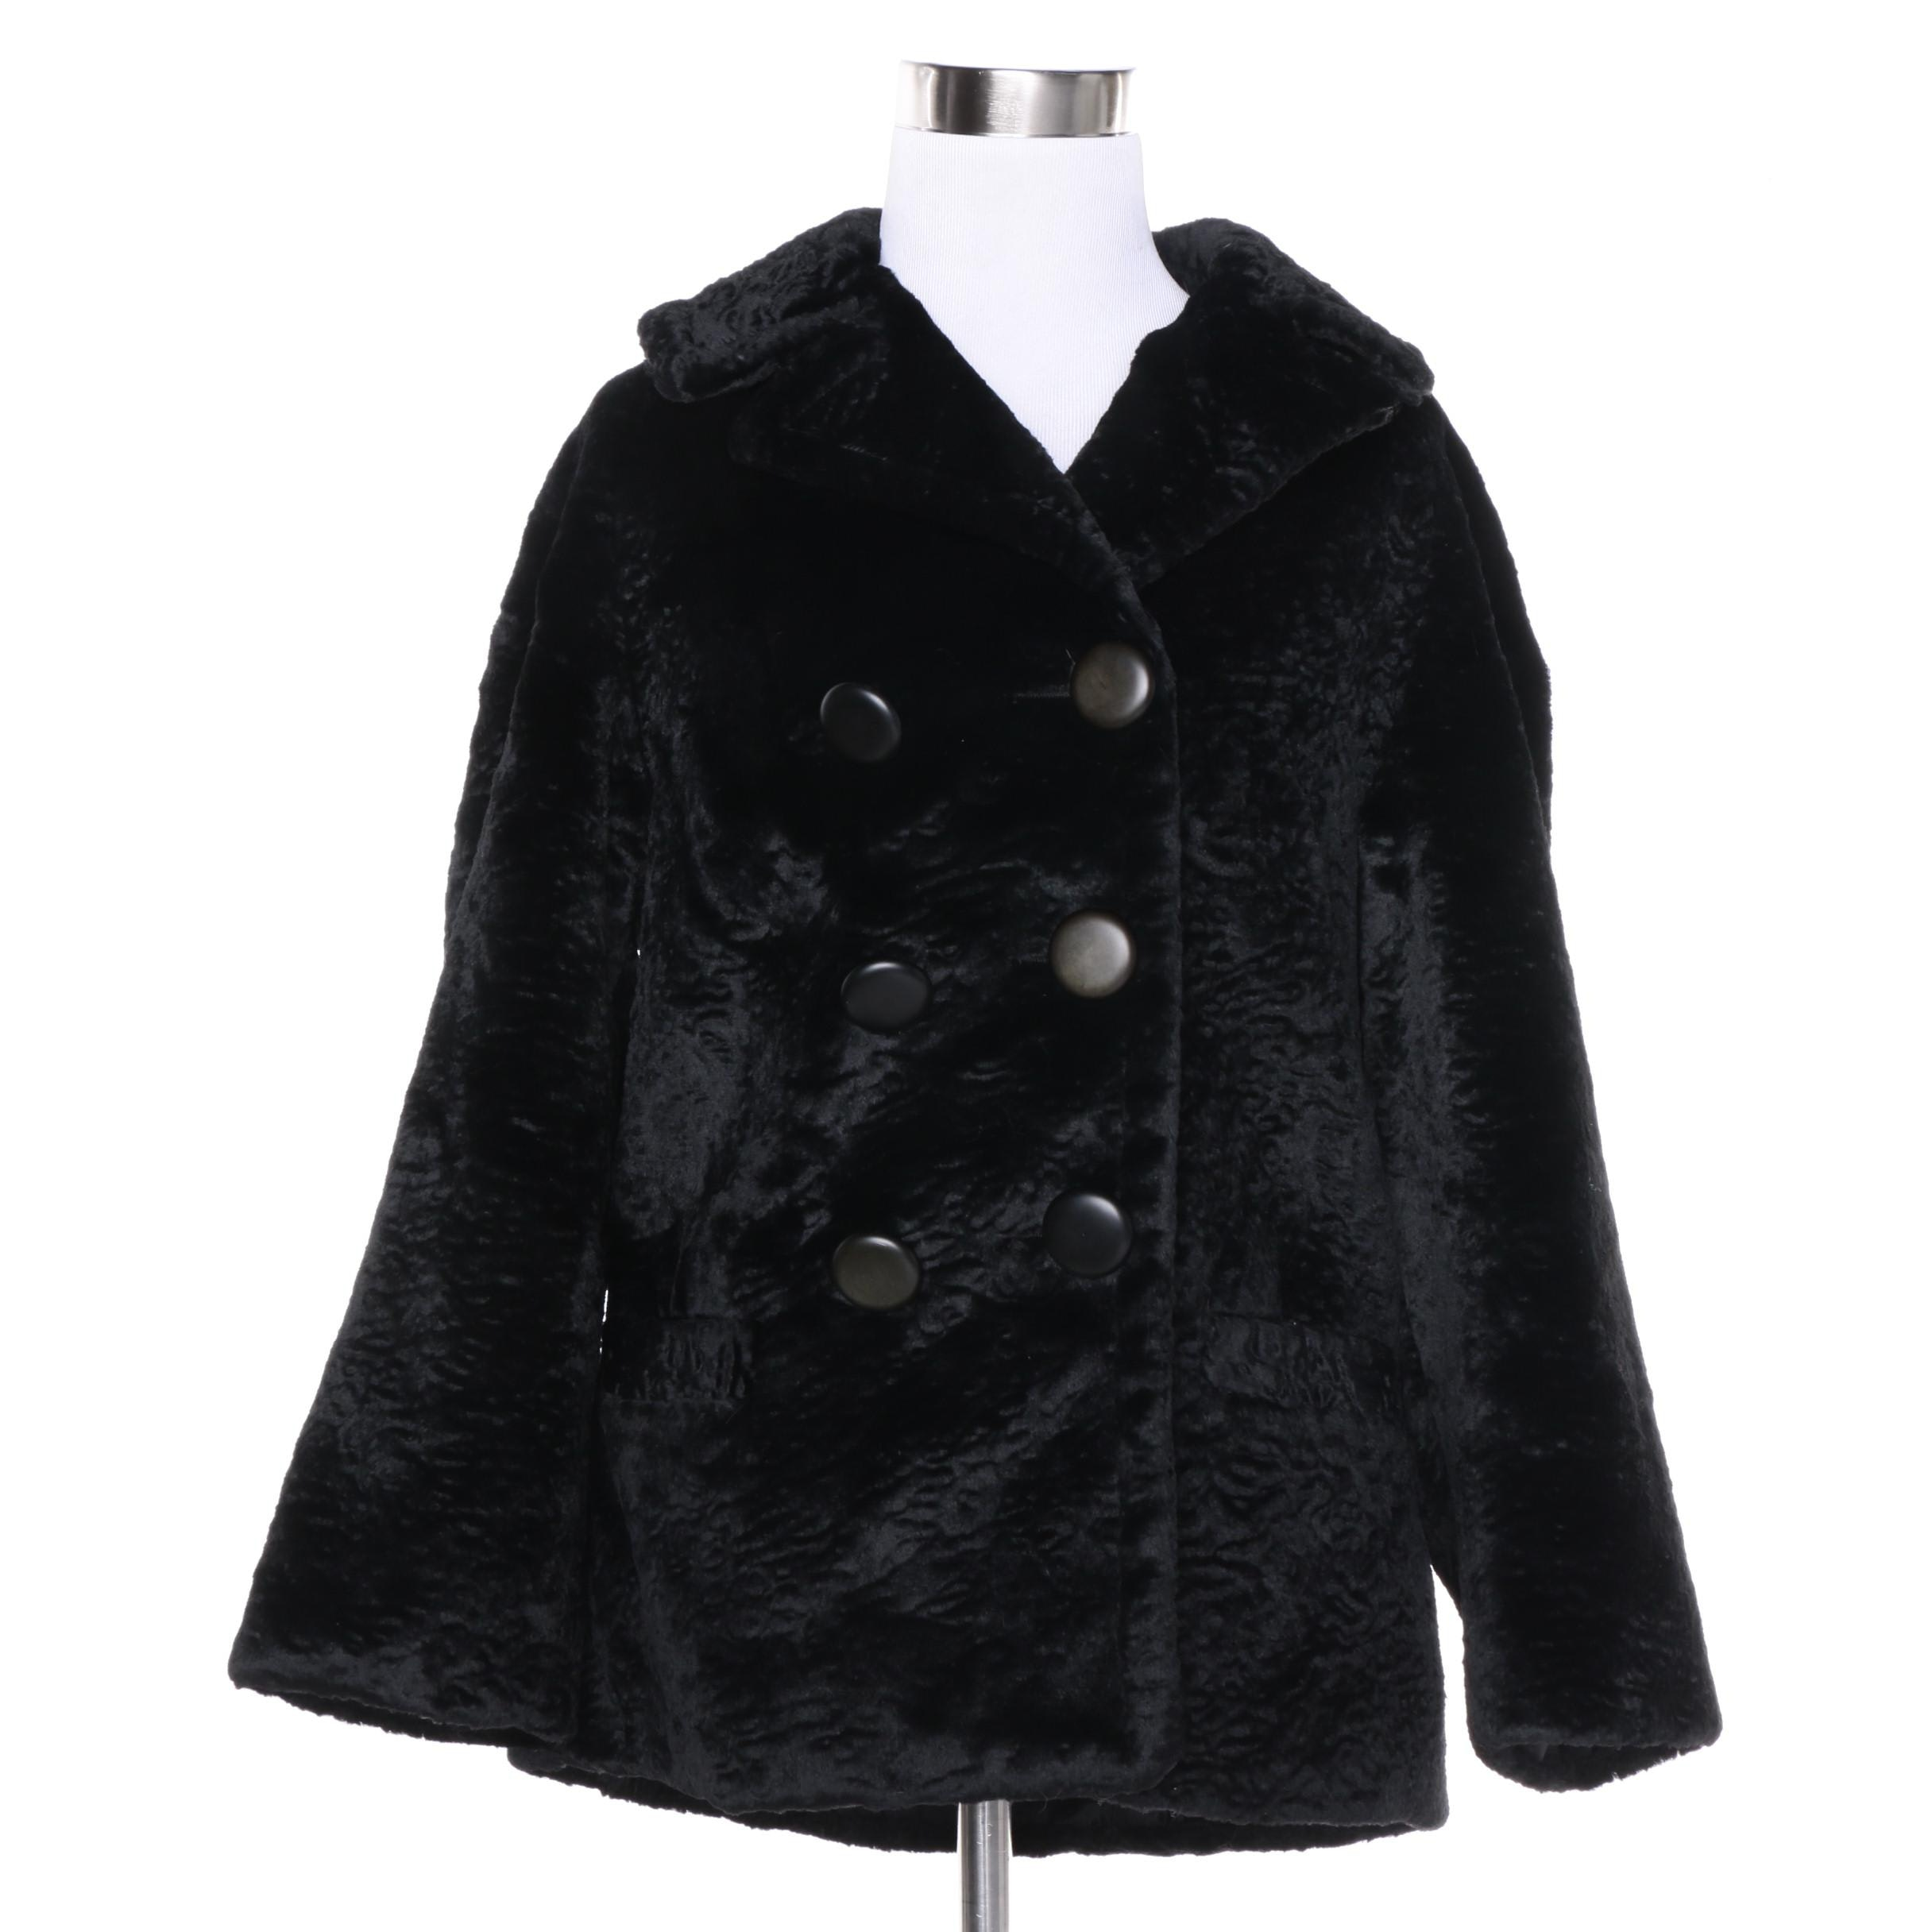 Women's Vintage Double-Breasted Black Faux Broadtail Coat